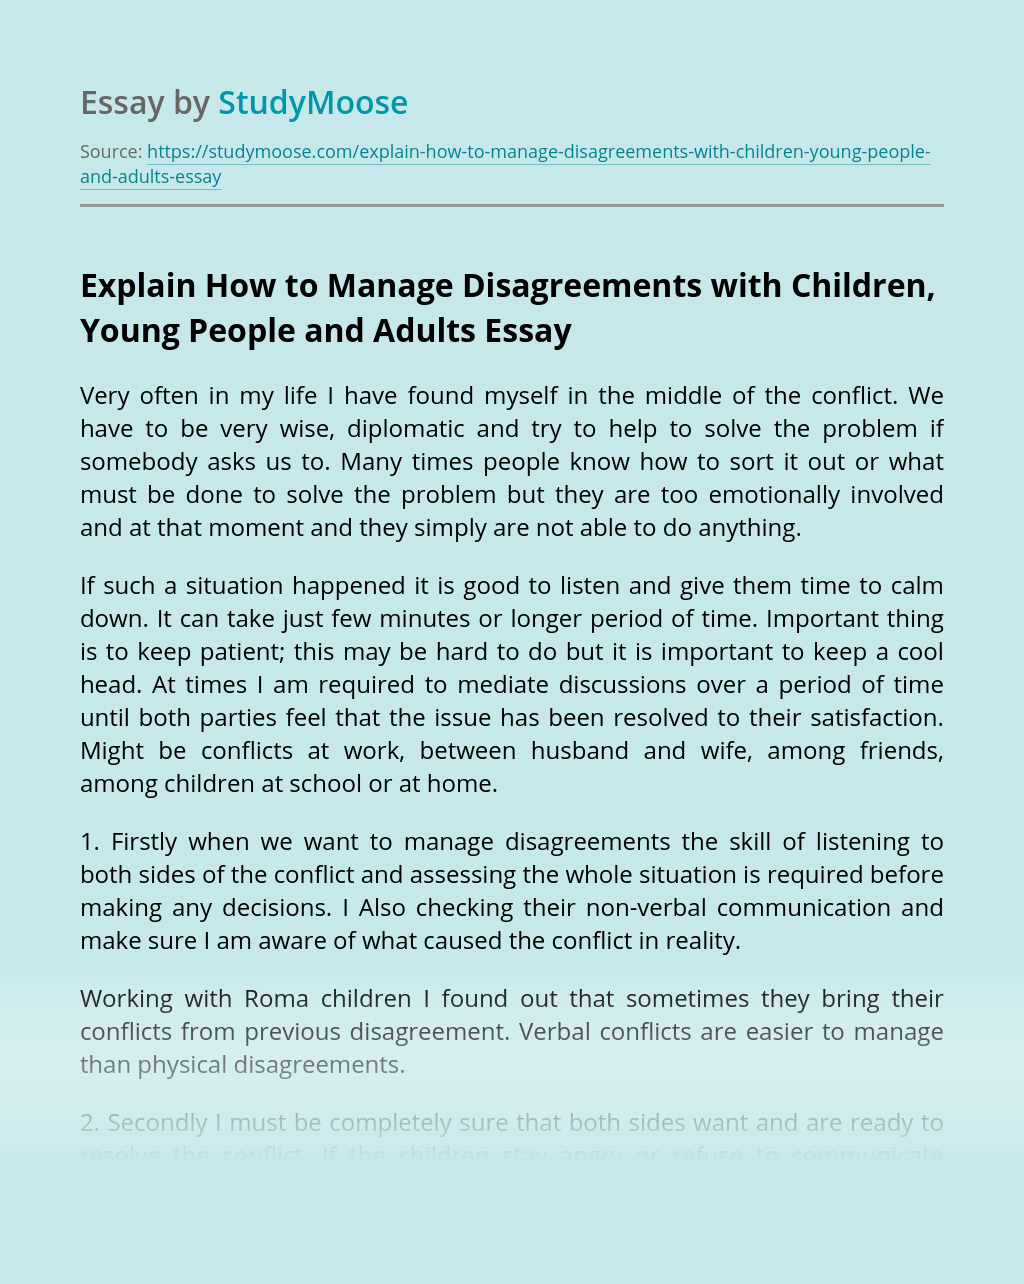 Explain How to Manage Disagreements with Children, Young People and Adults